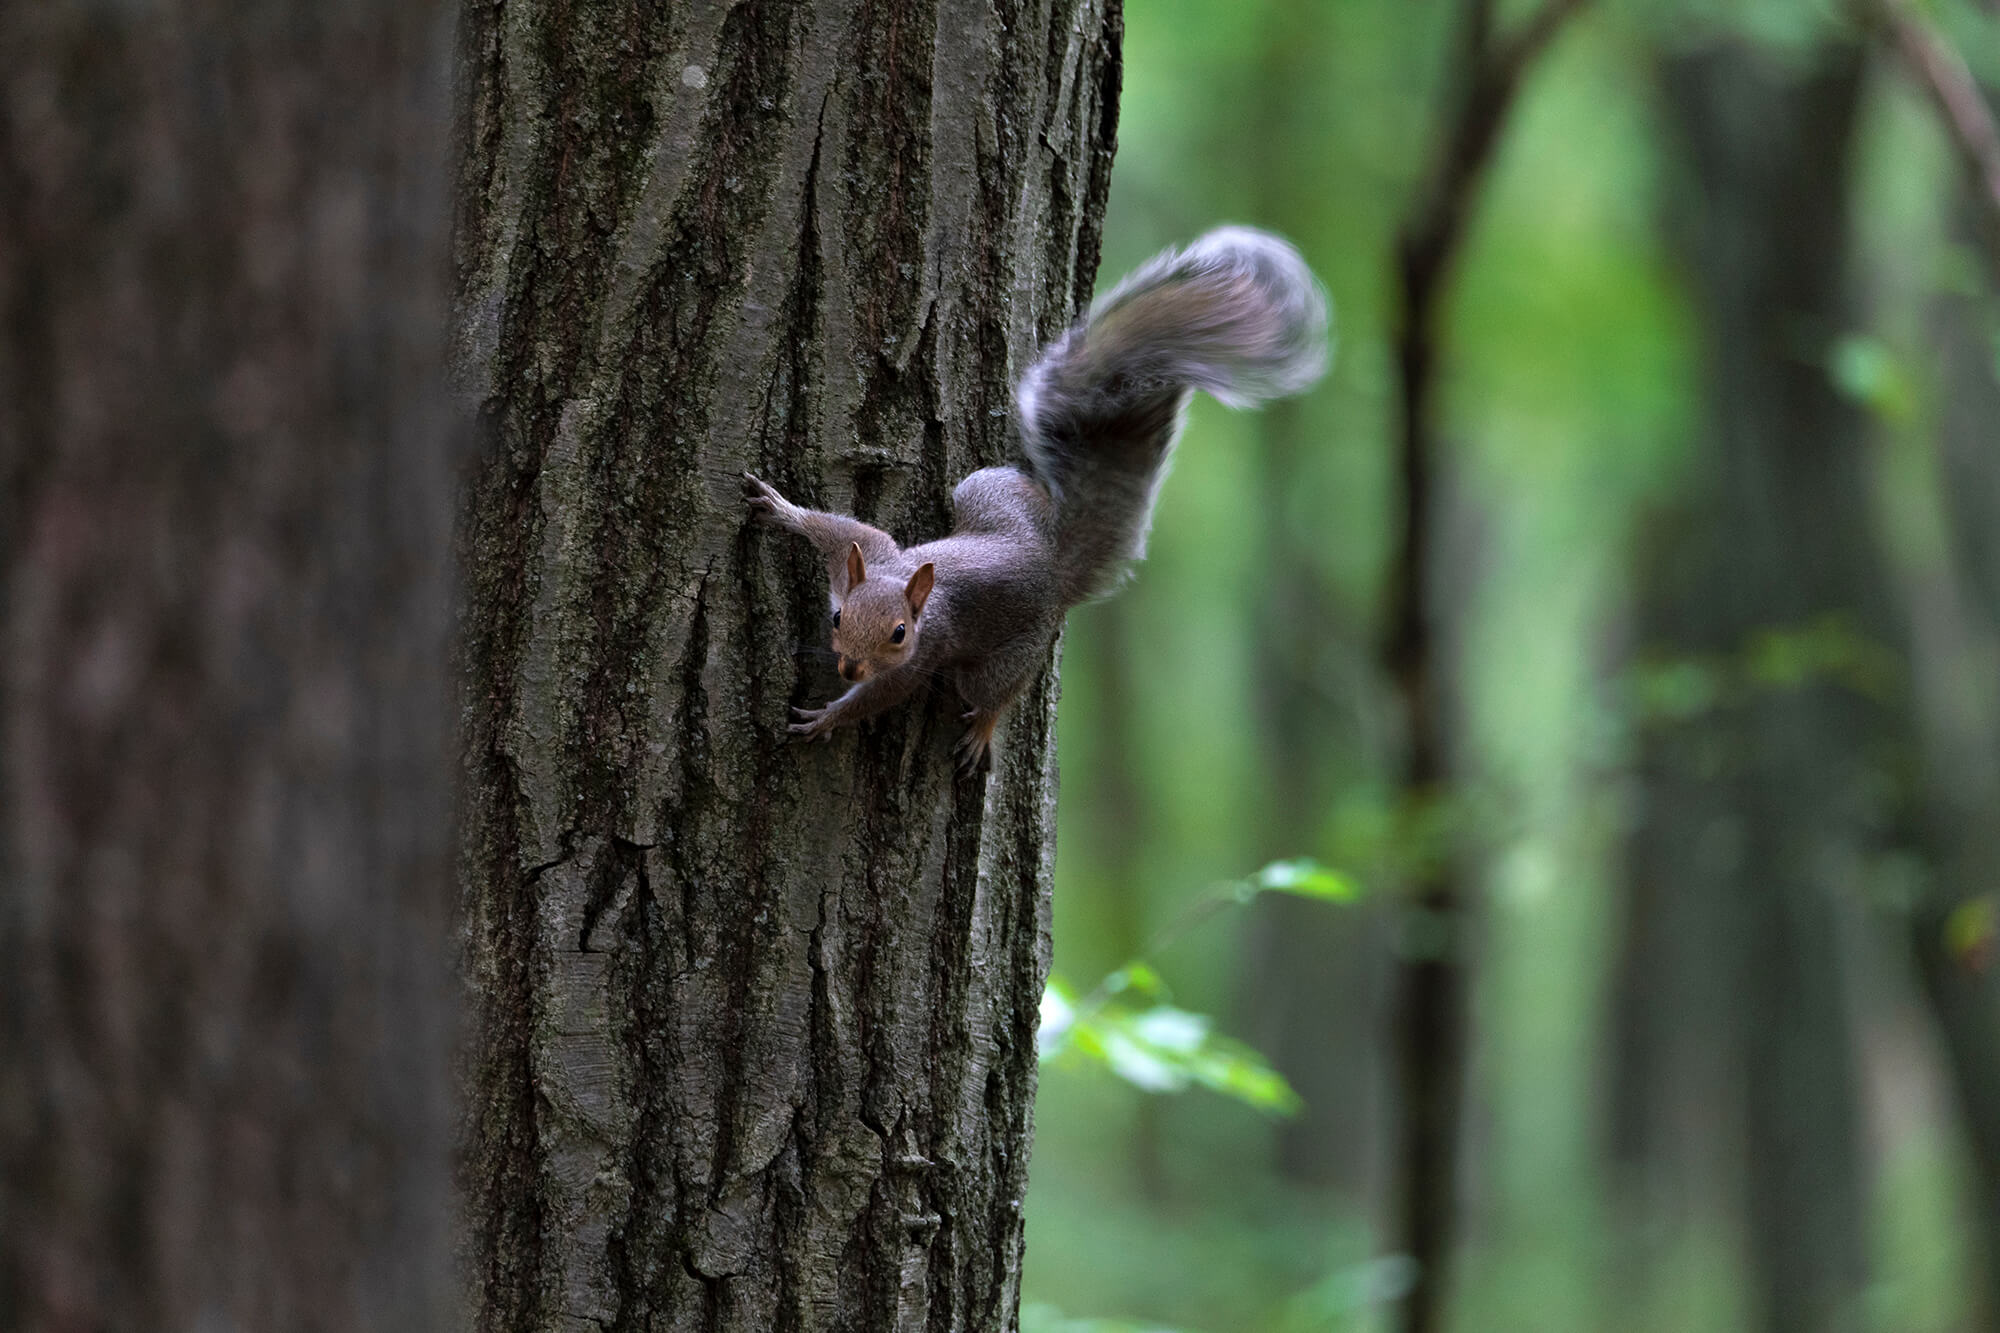 Squirrel vertically facing down, but slightly tilted.